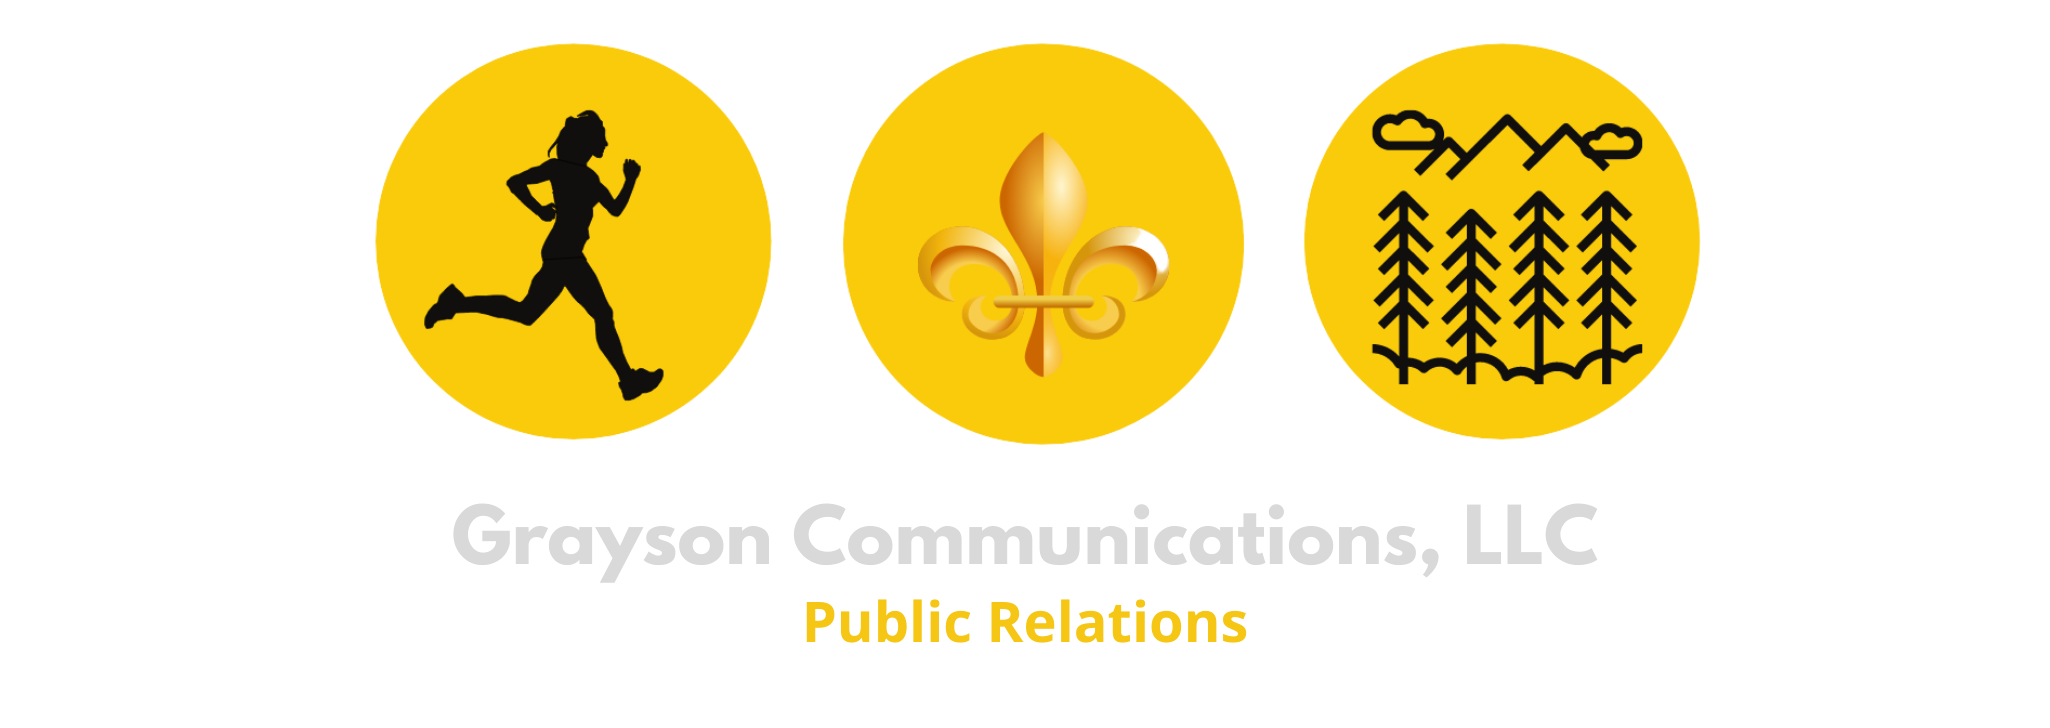 Grayson Communications